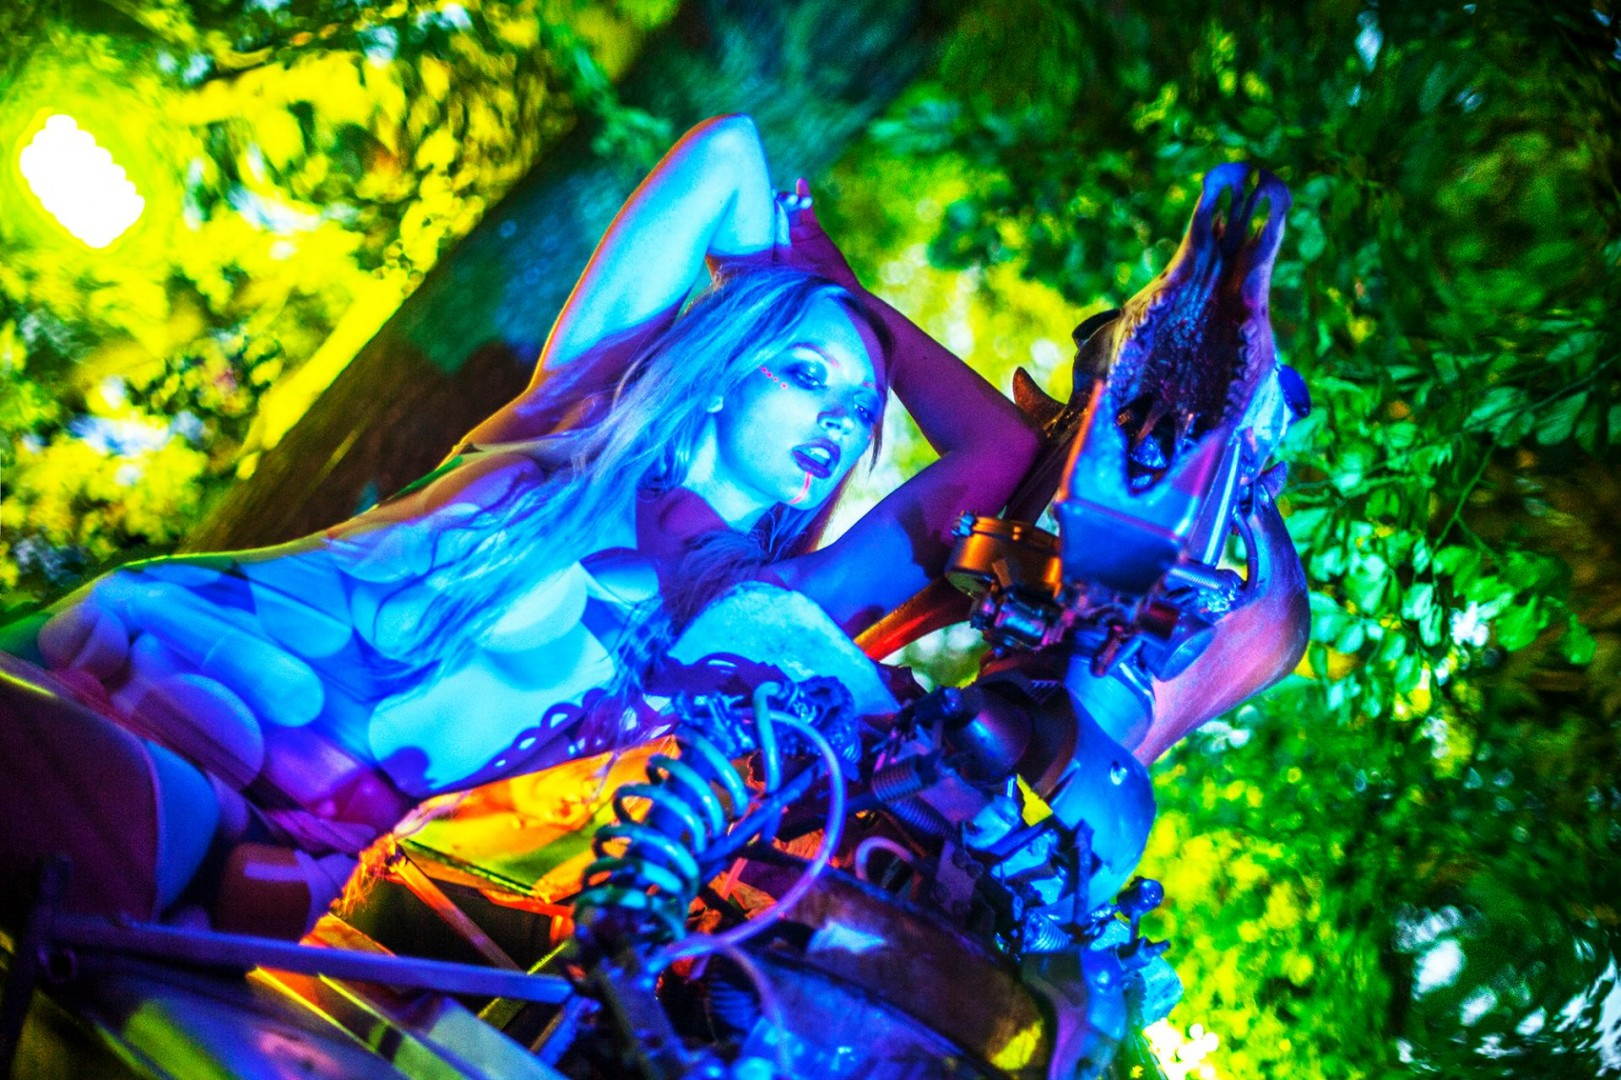 So this year, I decided to have a fashion shoot at my most favorite festival Blissfields Festival so this is the fairytale we created ...<br />